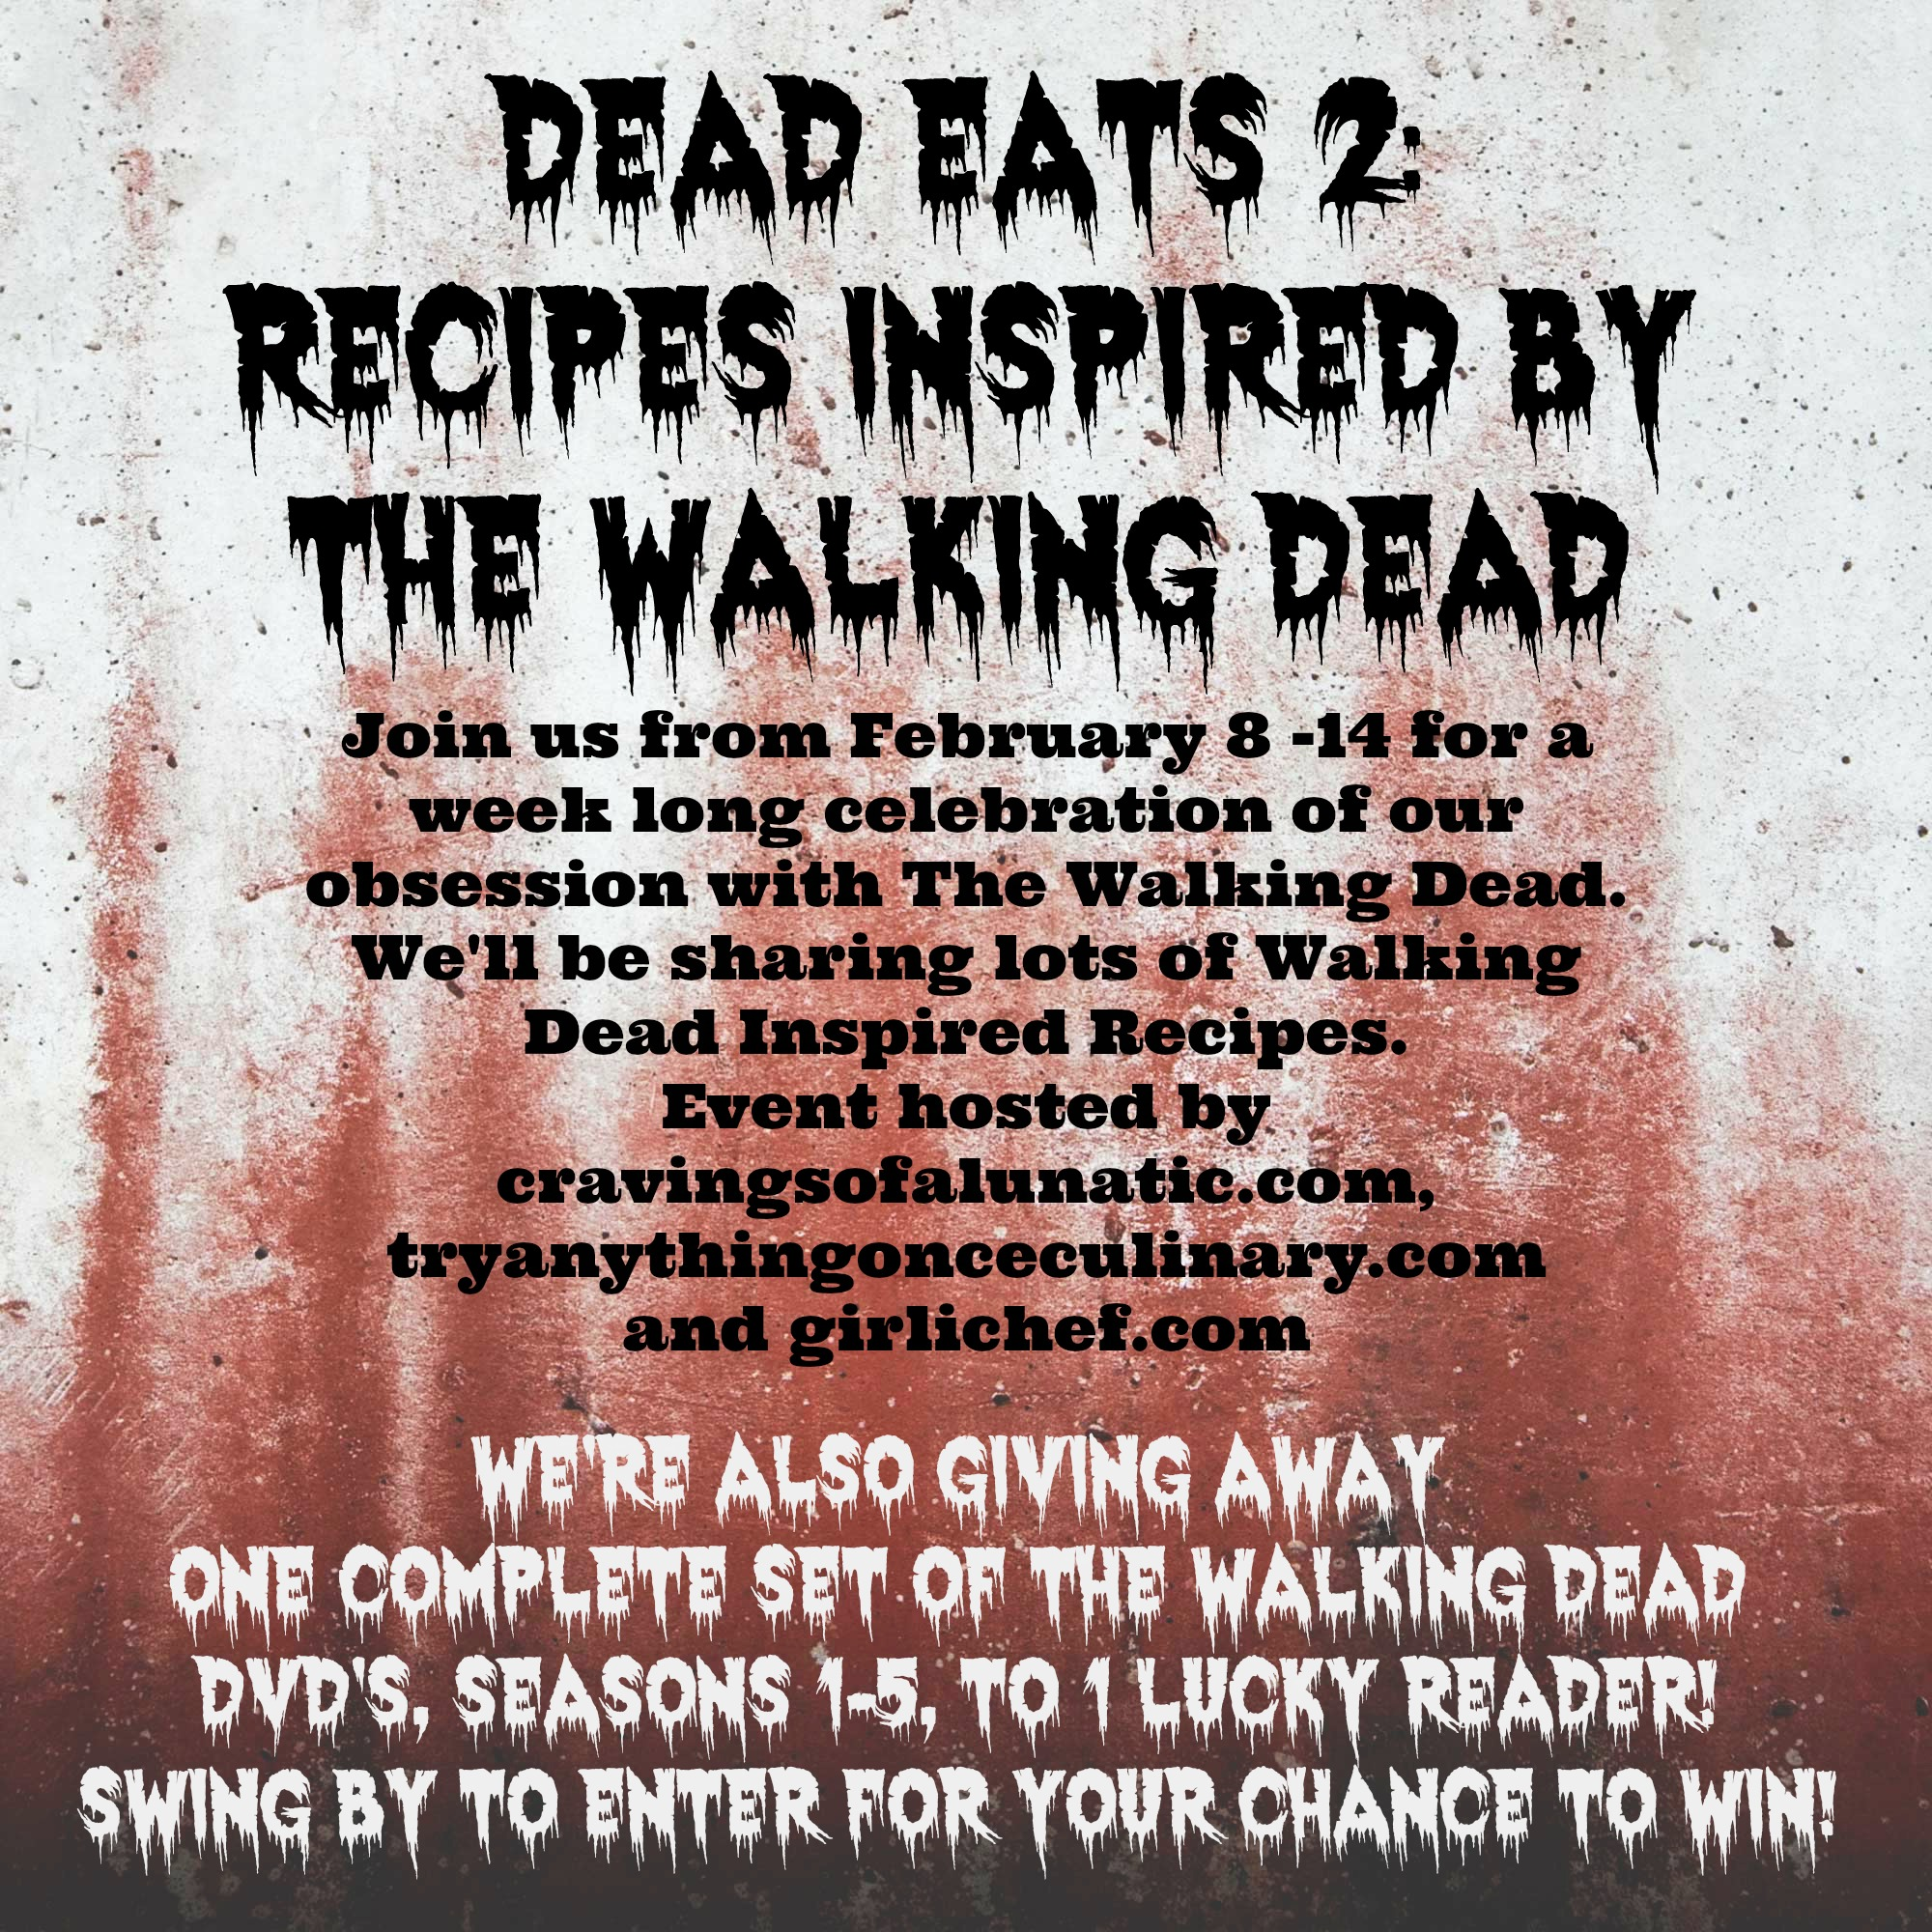 Dead Eats 2: Recipes Inspired by The Walking Dead! Giveaway for One Complete Set of The Walking Dead DVD's, Season 1 - 5. To enter for your chance to win please visit cravingsofalunatic.com! Good luck!